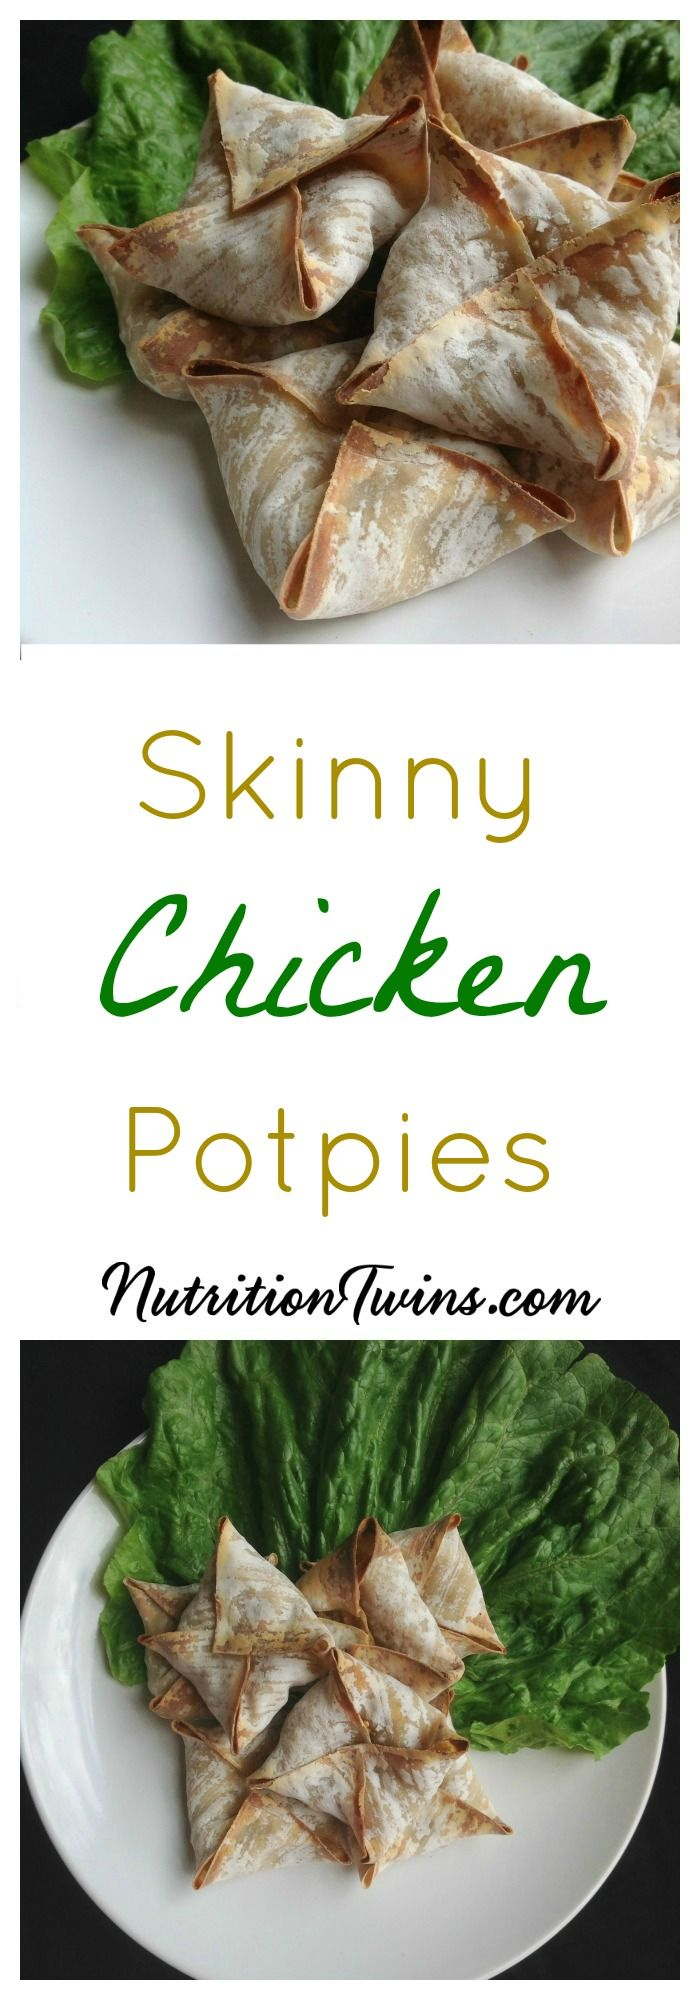 17 Best images about Good healthly eating on Pinterest ...